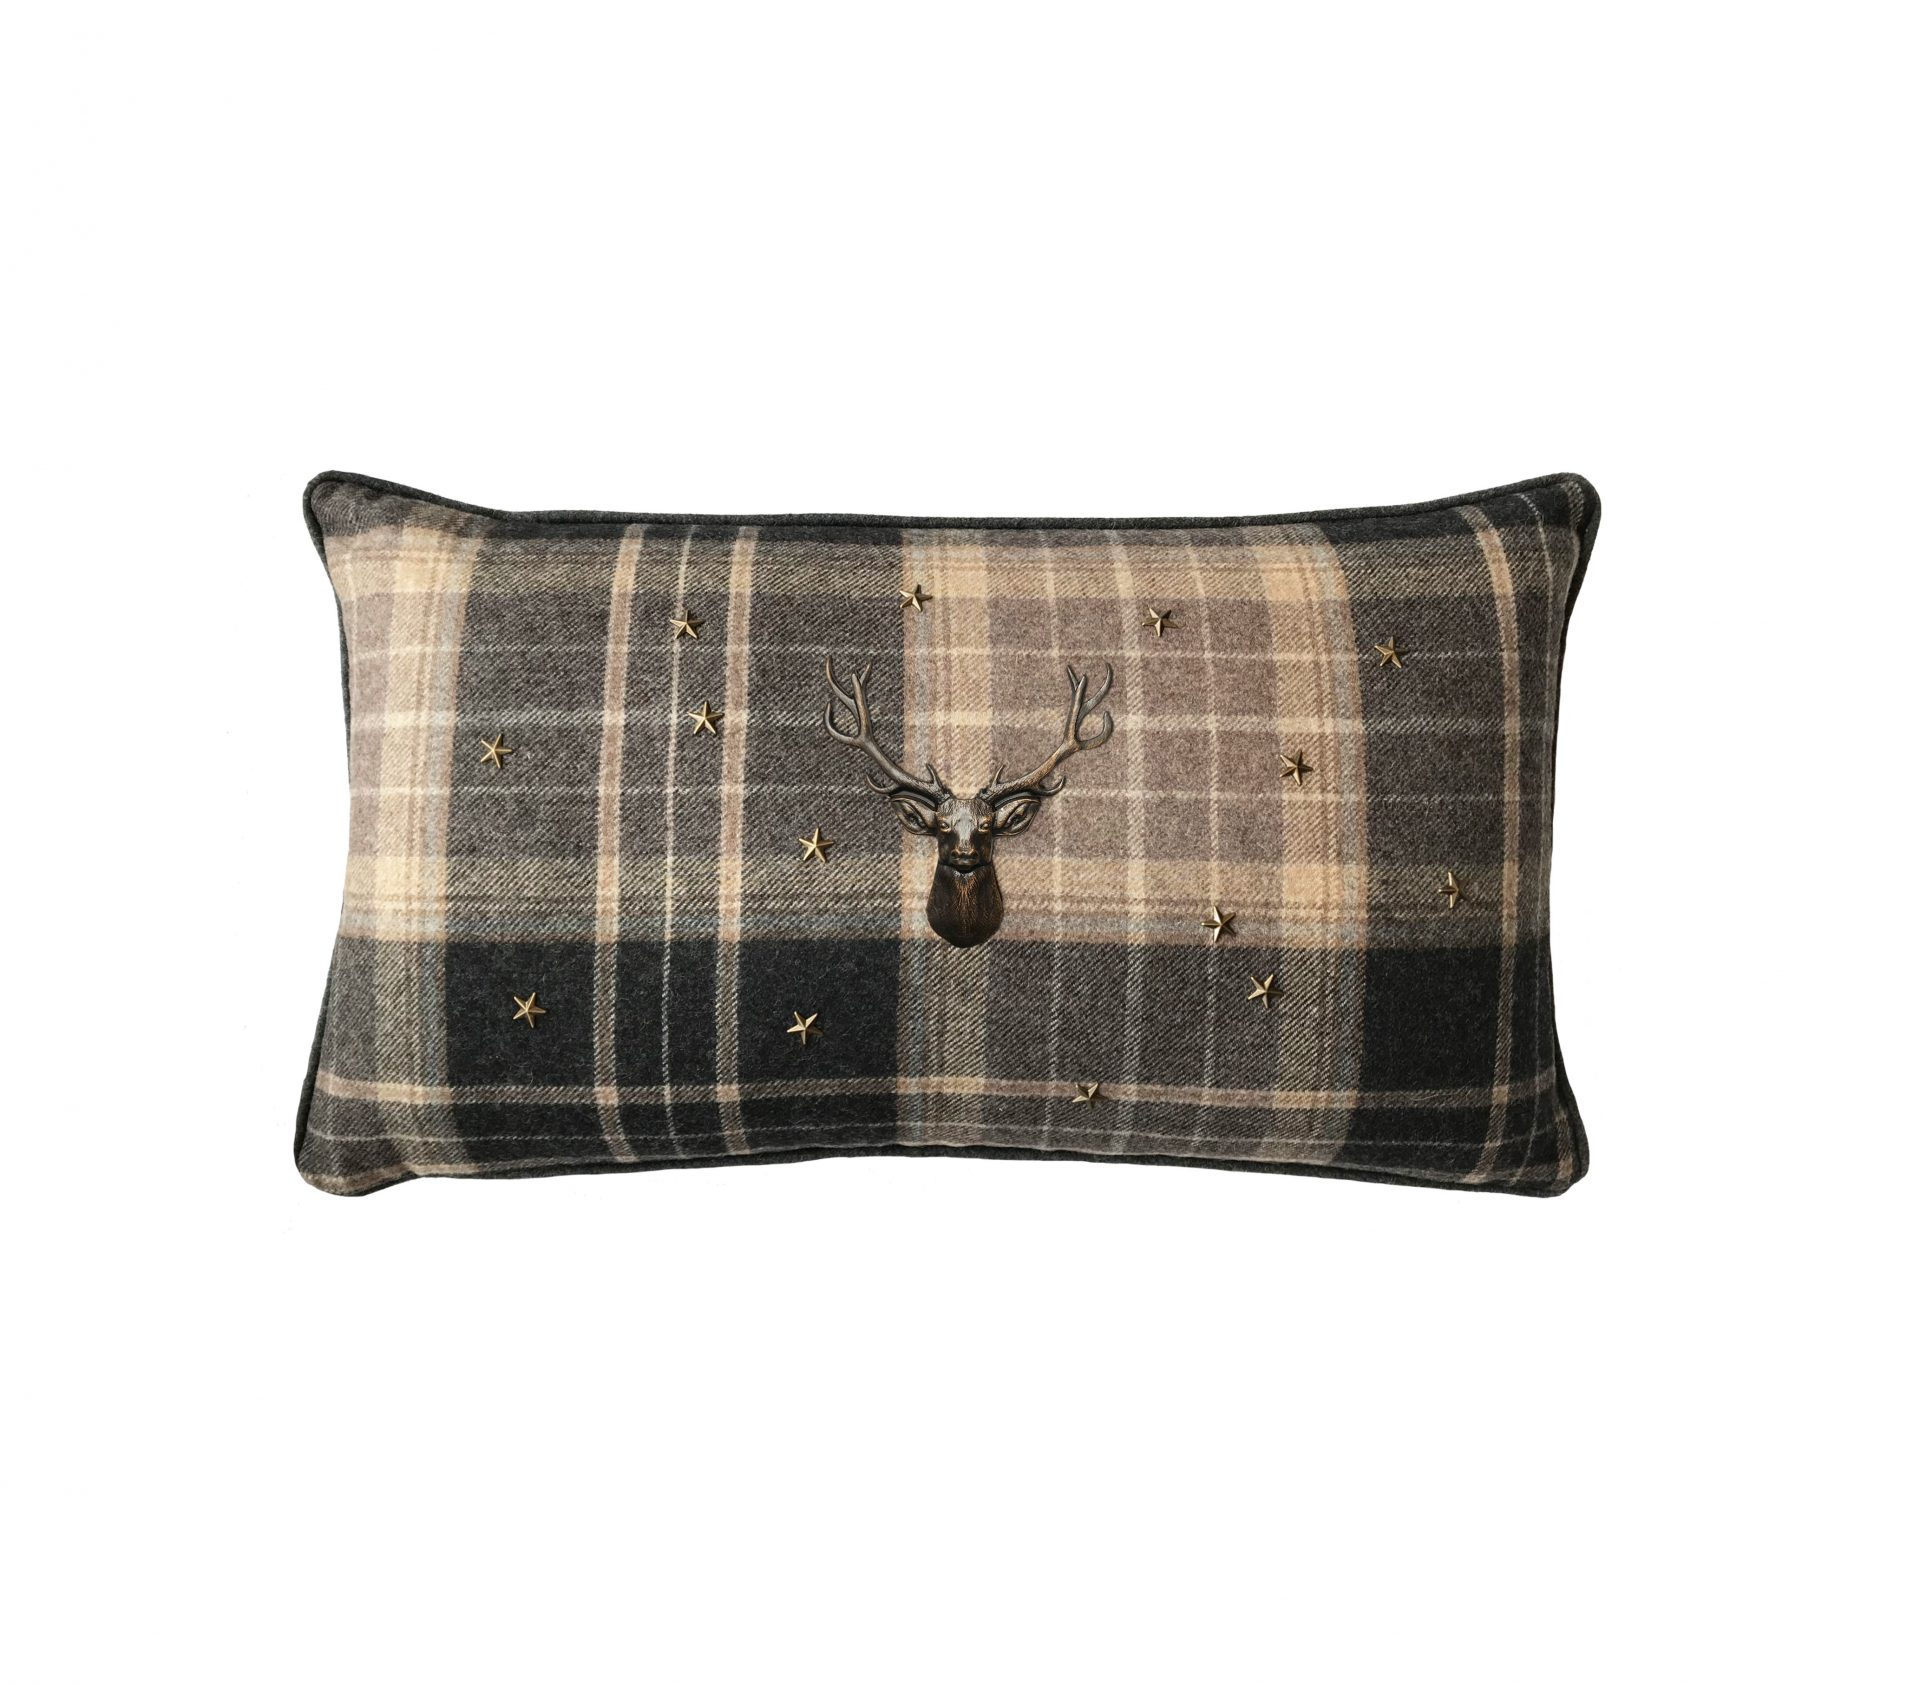 Brown tartan throw pillow with bronze stag and stars.